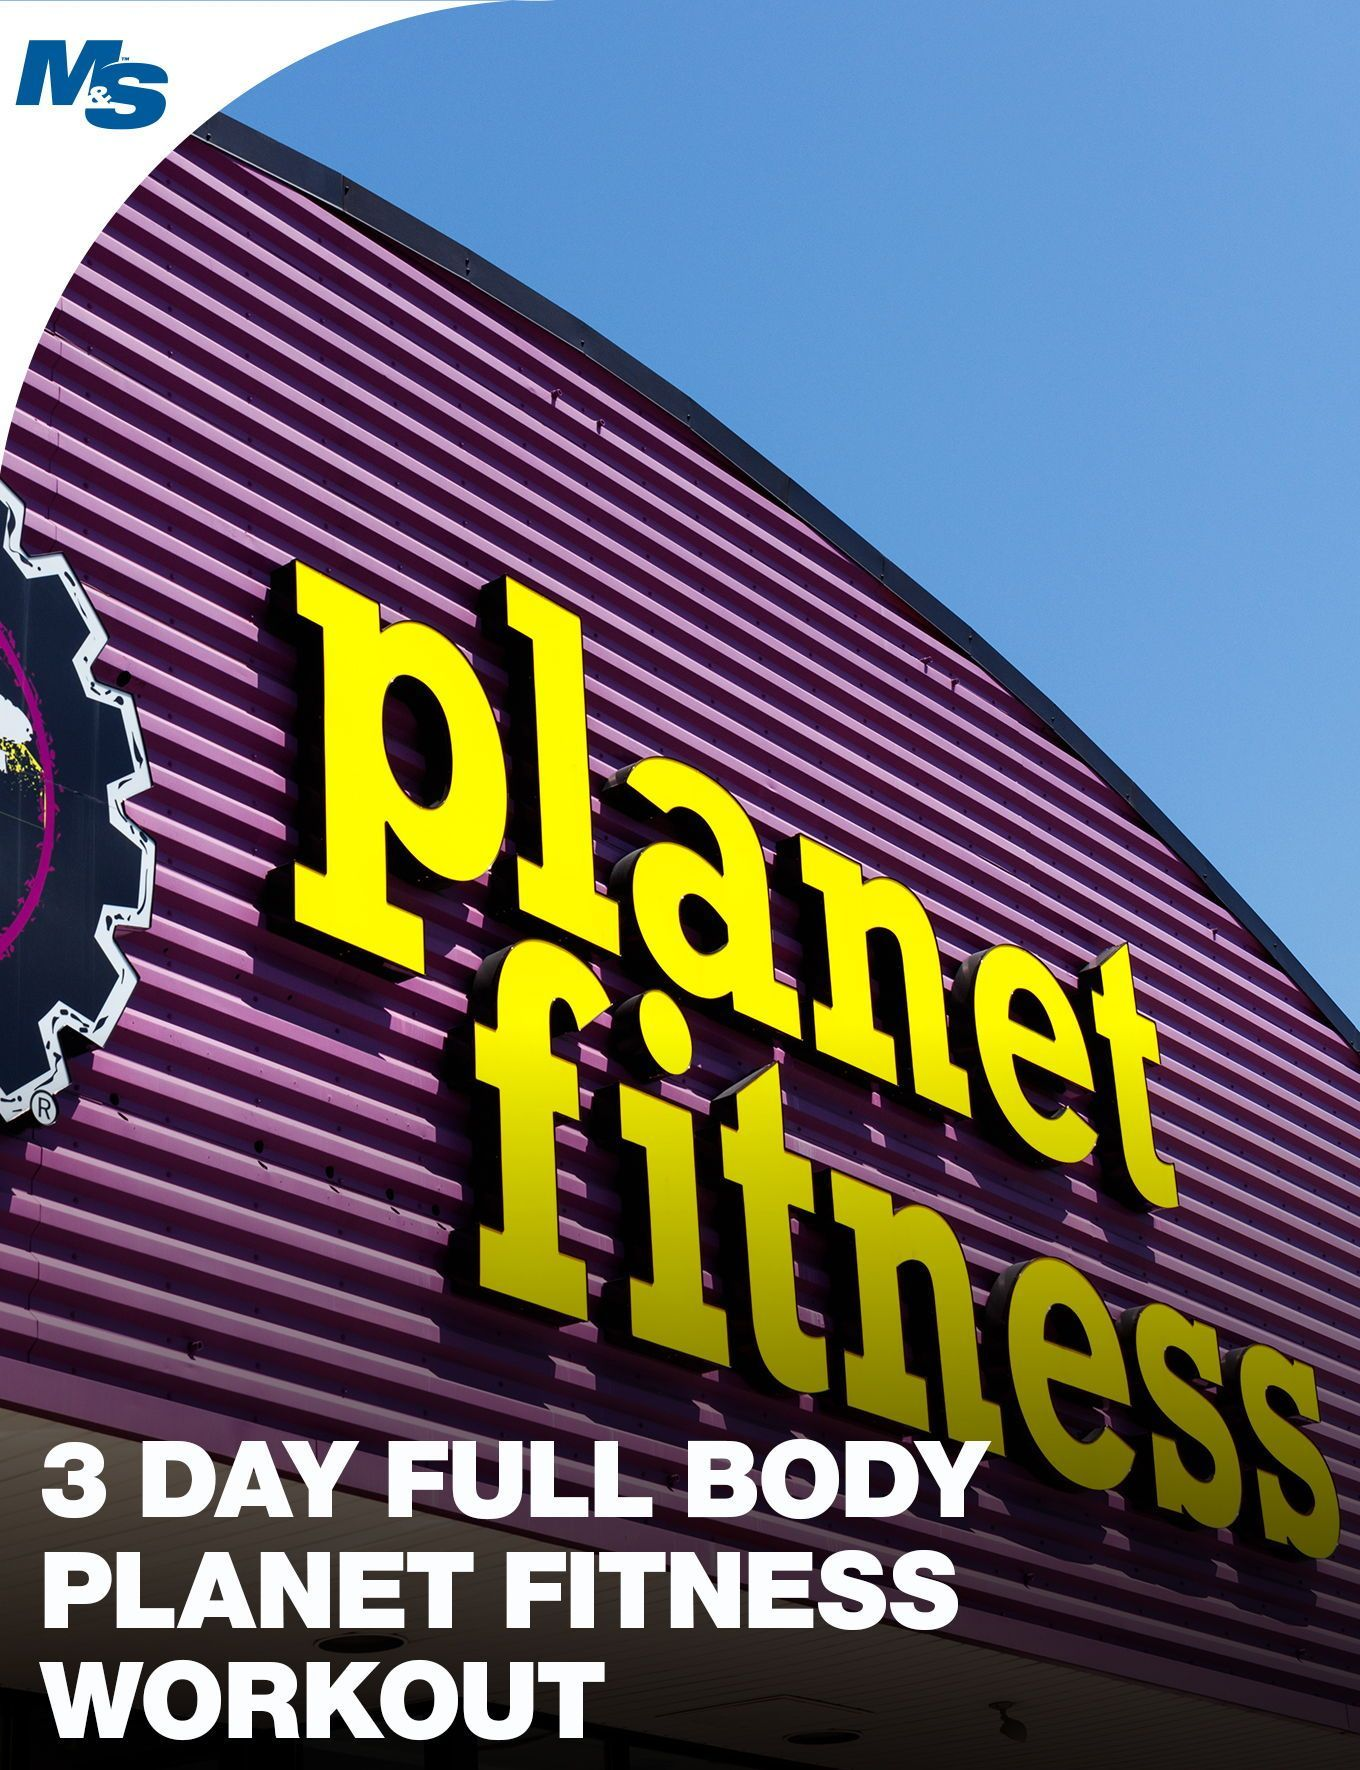 #planetfitness #dumbbellonly #appropriate #dumbbells #equipment #workouts #machines #workout #fitnes...